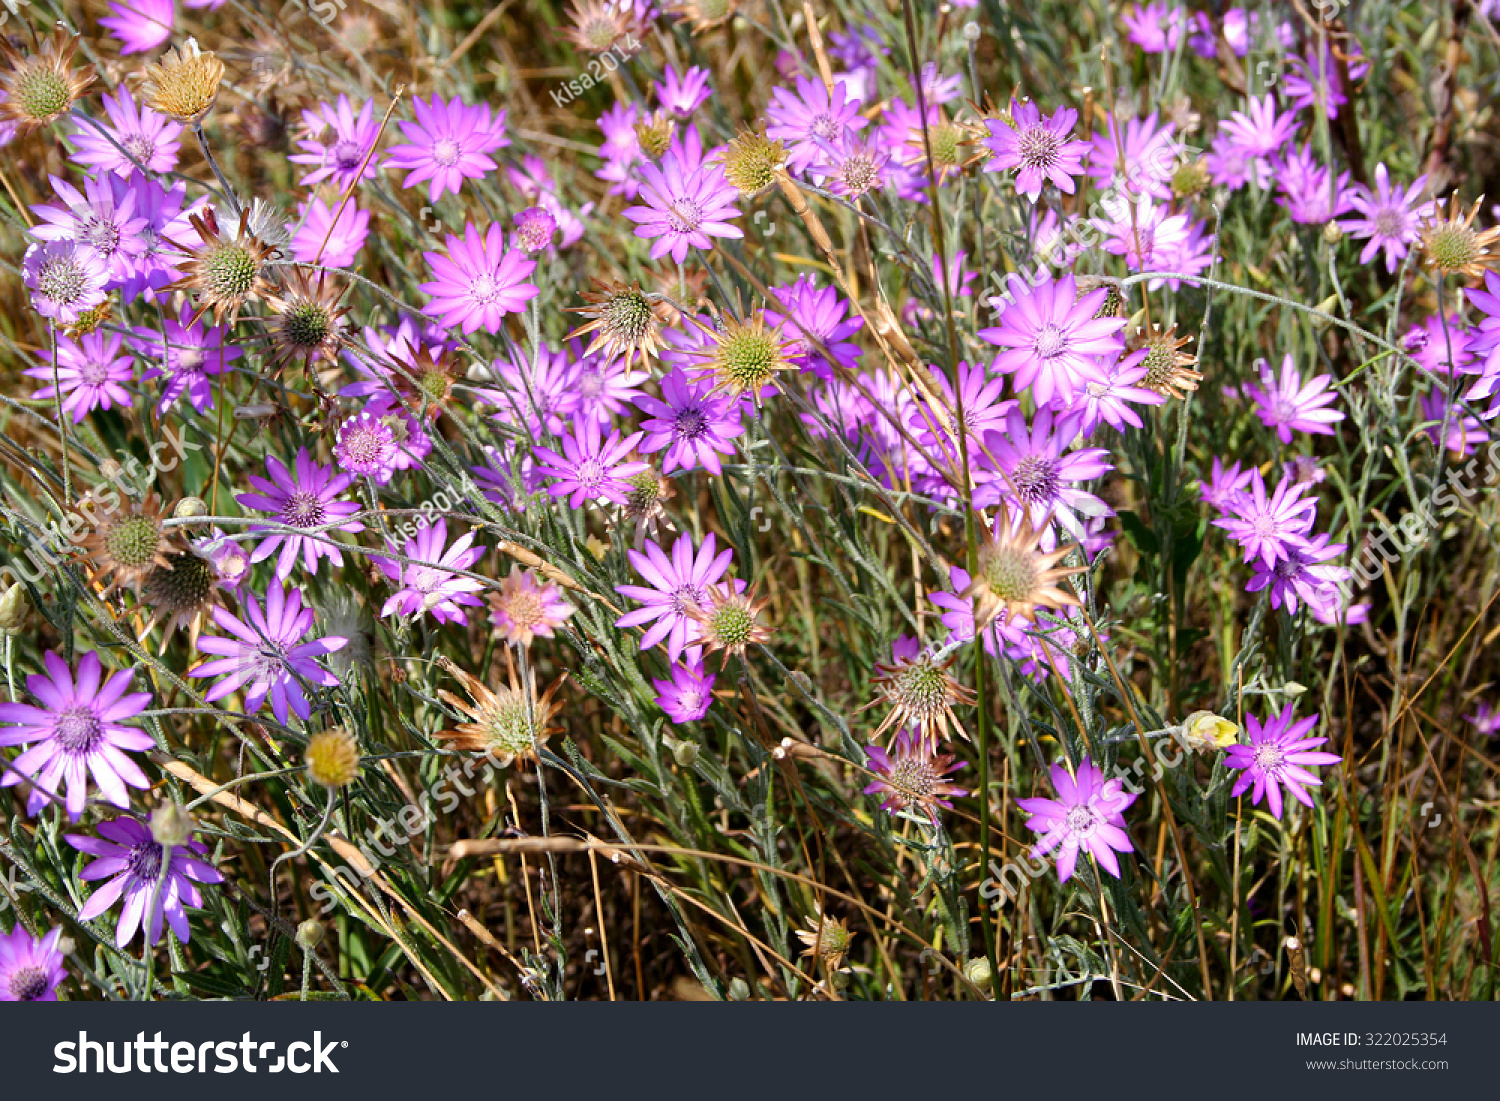 Field flowers similar purplepink daisy stock photo 322025354 field of flowers similar to the purple pink daisy izmirmasajfo Choice Image